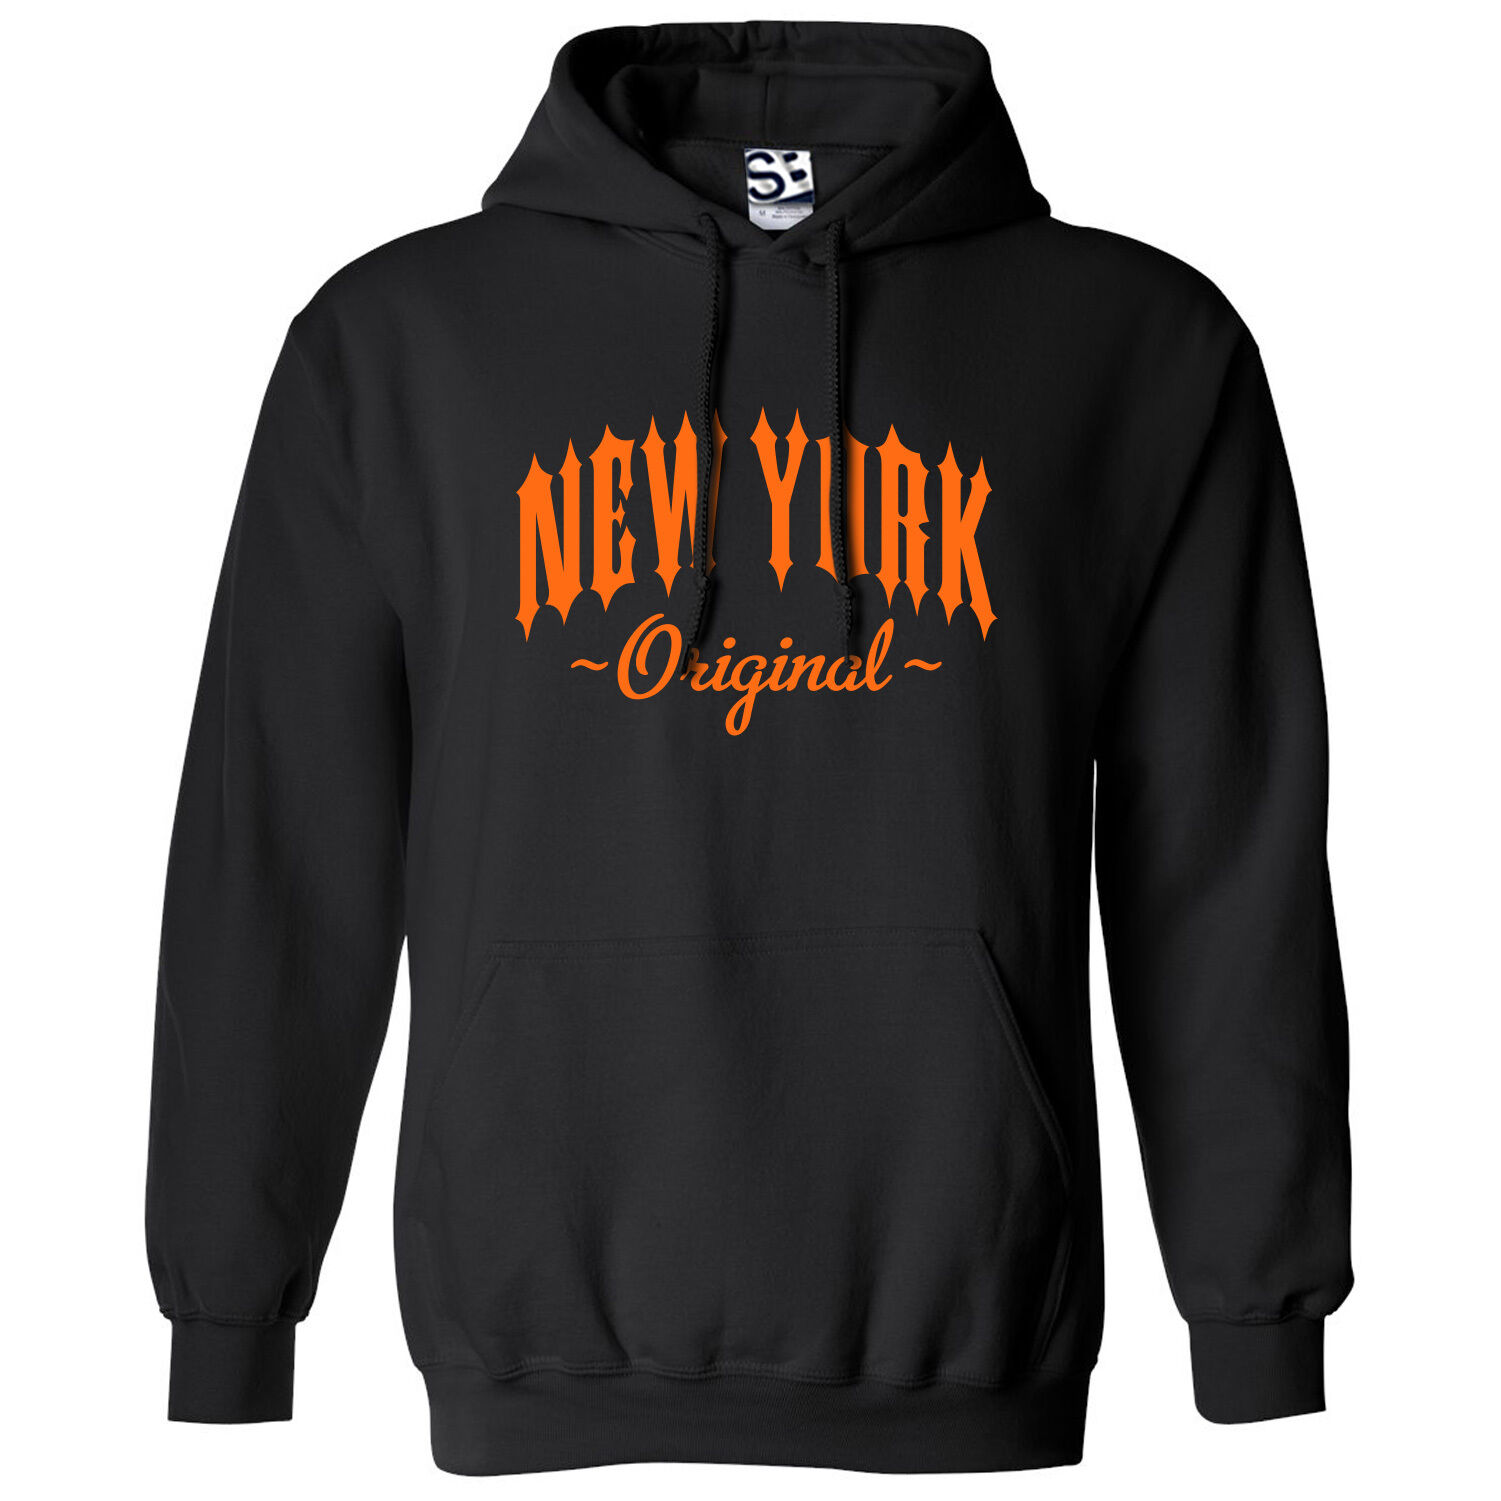 New York Original Outlaw HOODIE - Hooded NY N.Y. I Love Sweatshirt - All Farbes